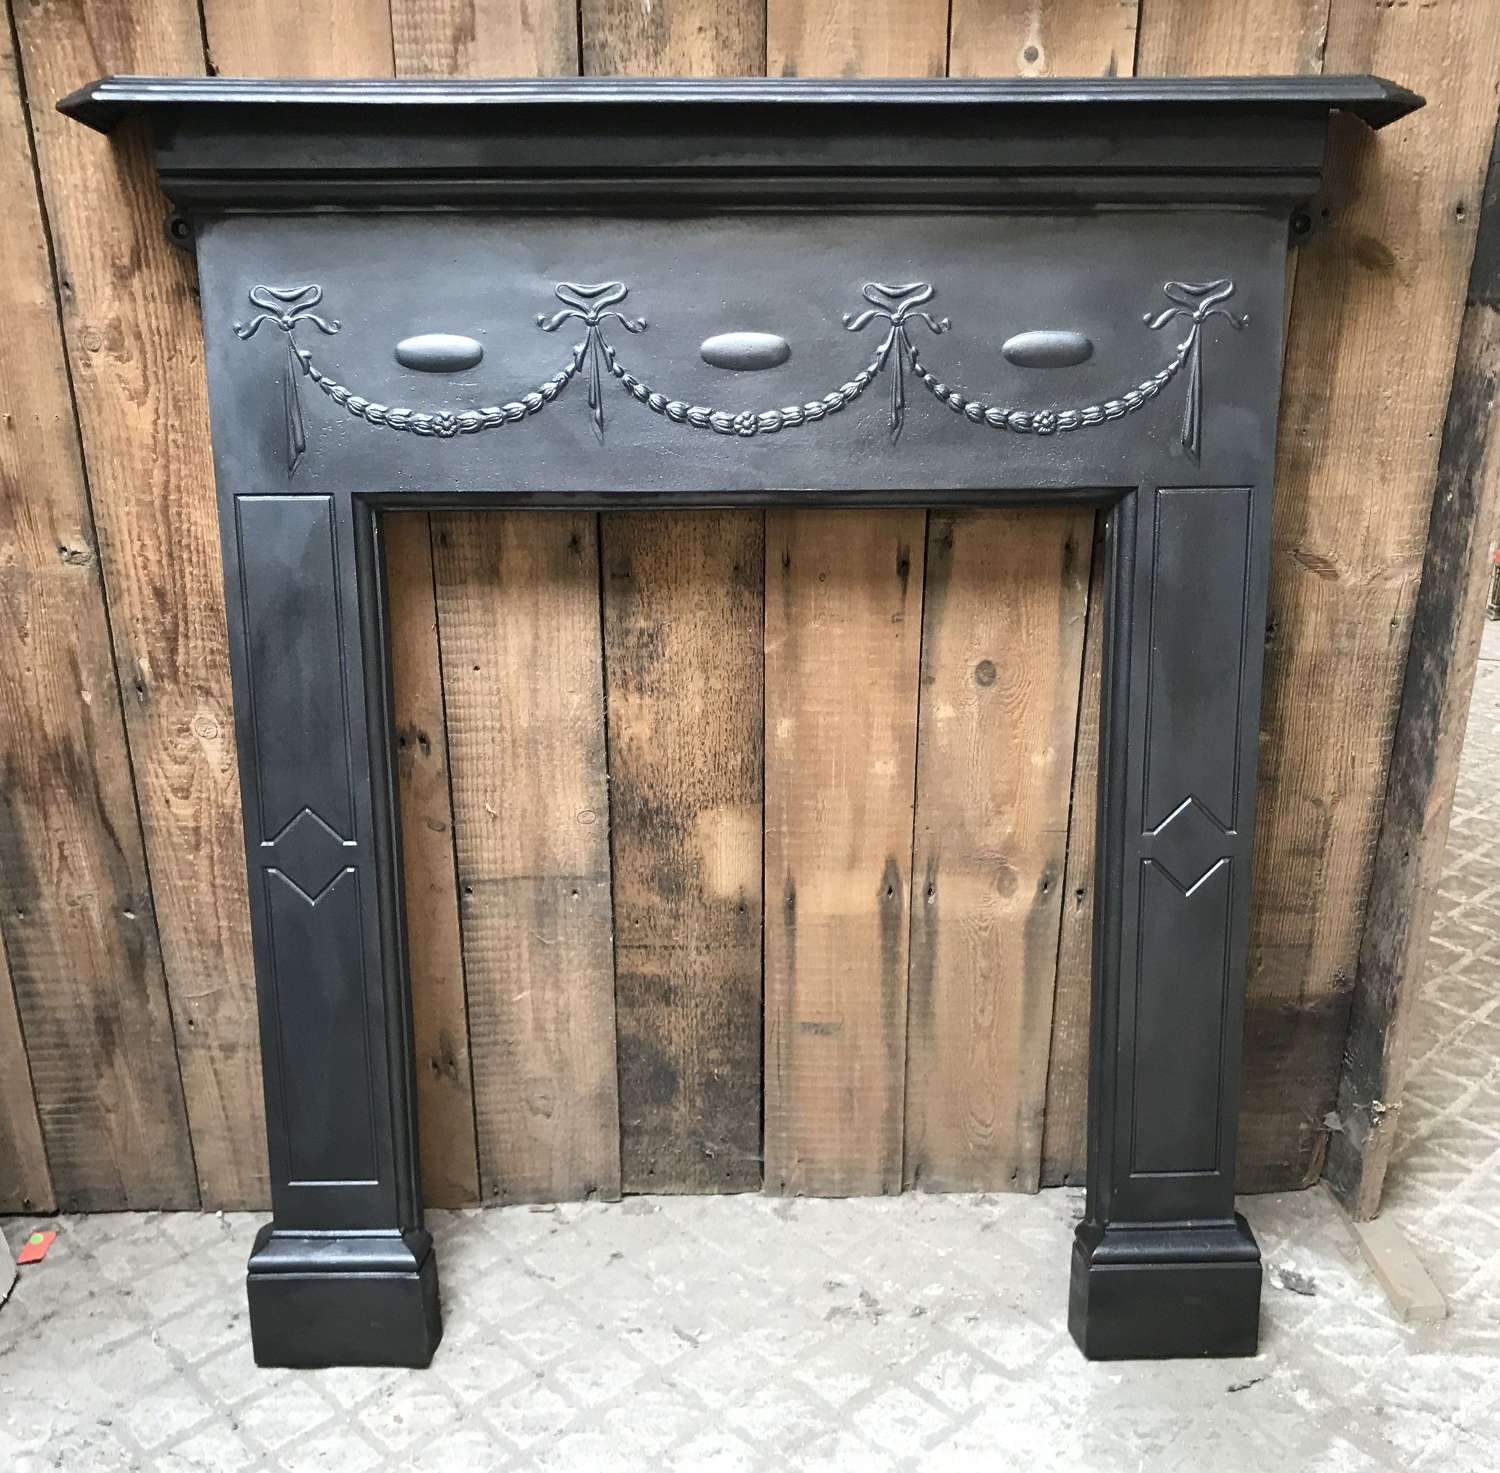 FS0112 A RECLAIMED EDWARDIAN CAST IRON FIRE SURROUND FOR WOOD BURNER